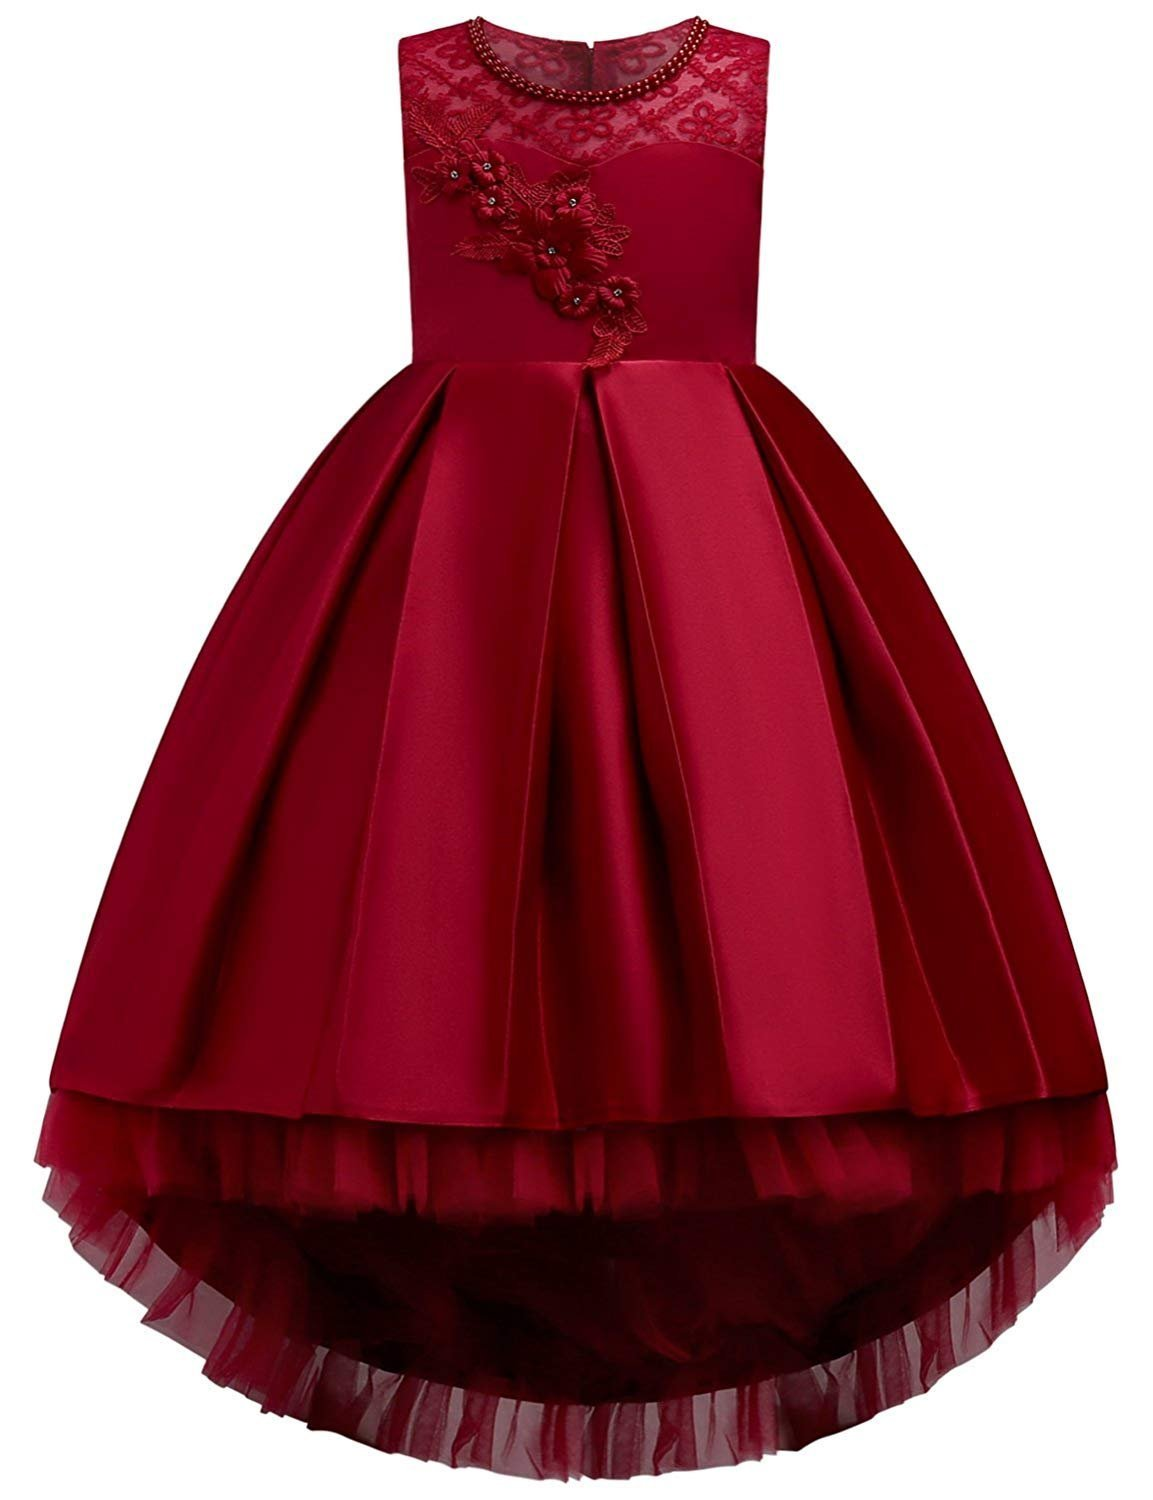 Bridesmaid Dresses for Teen Girl Wedding Party Holiday Graduation Princess Children Birthday Gift Girl Dresses Size 12 Casual Formal A Line Big Girl Dresses Age of 10 Tutu Dress (Red 140)